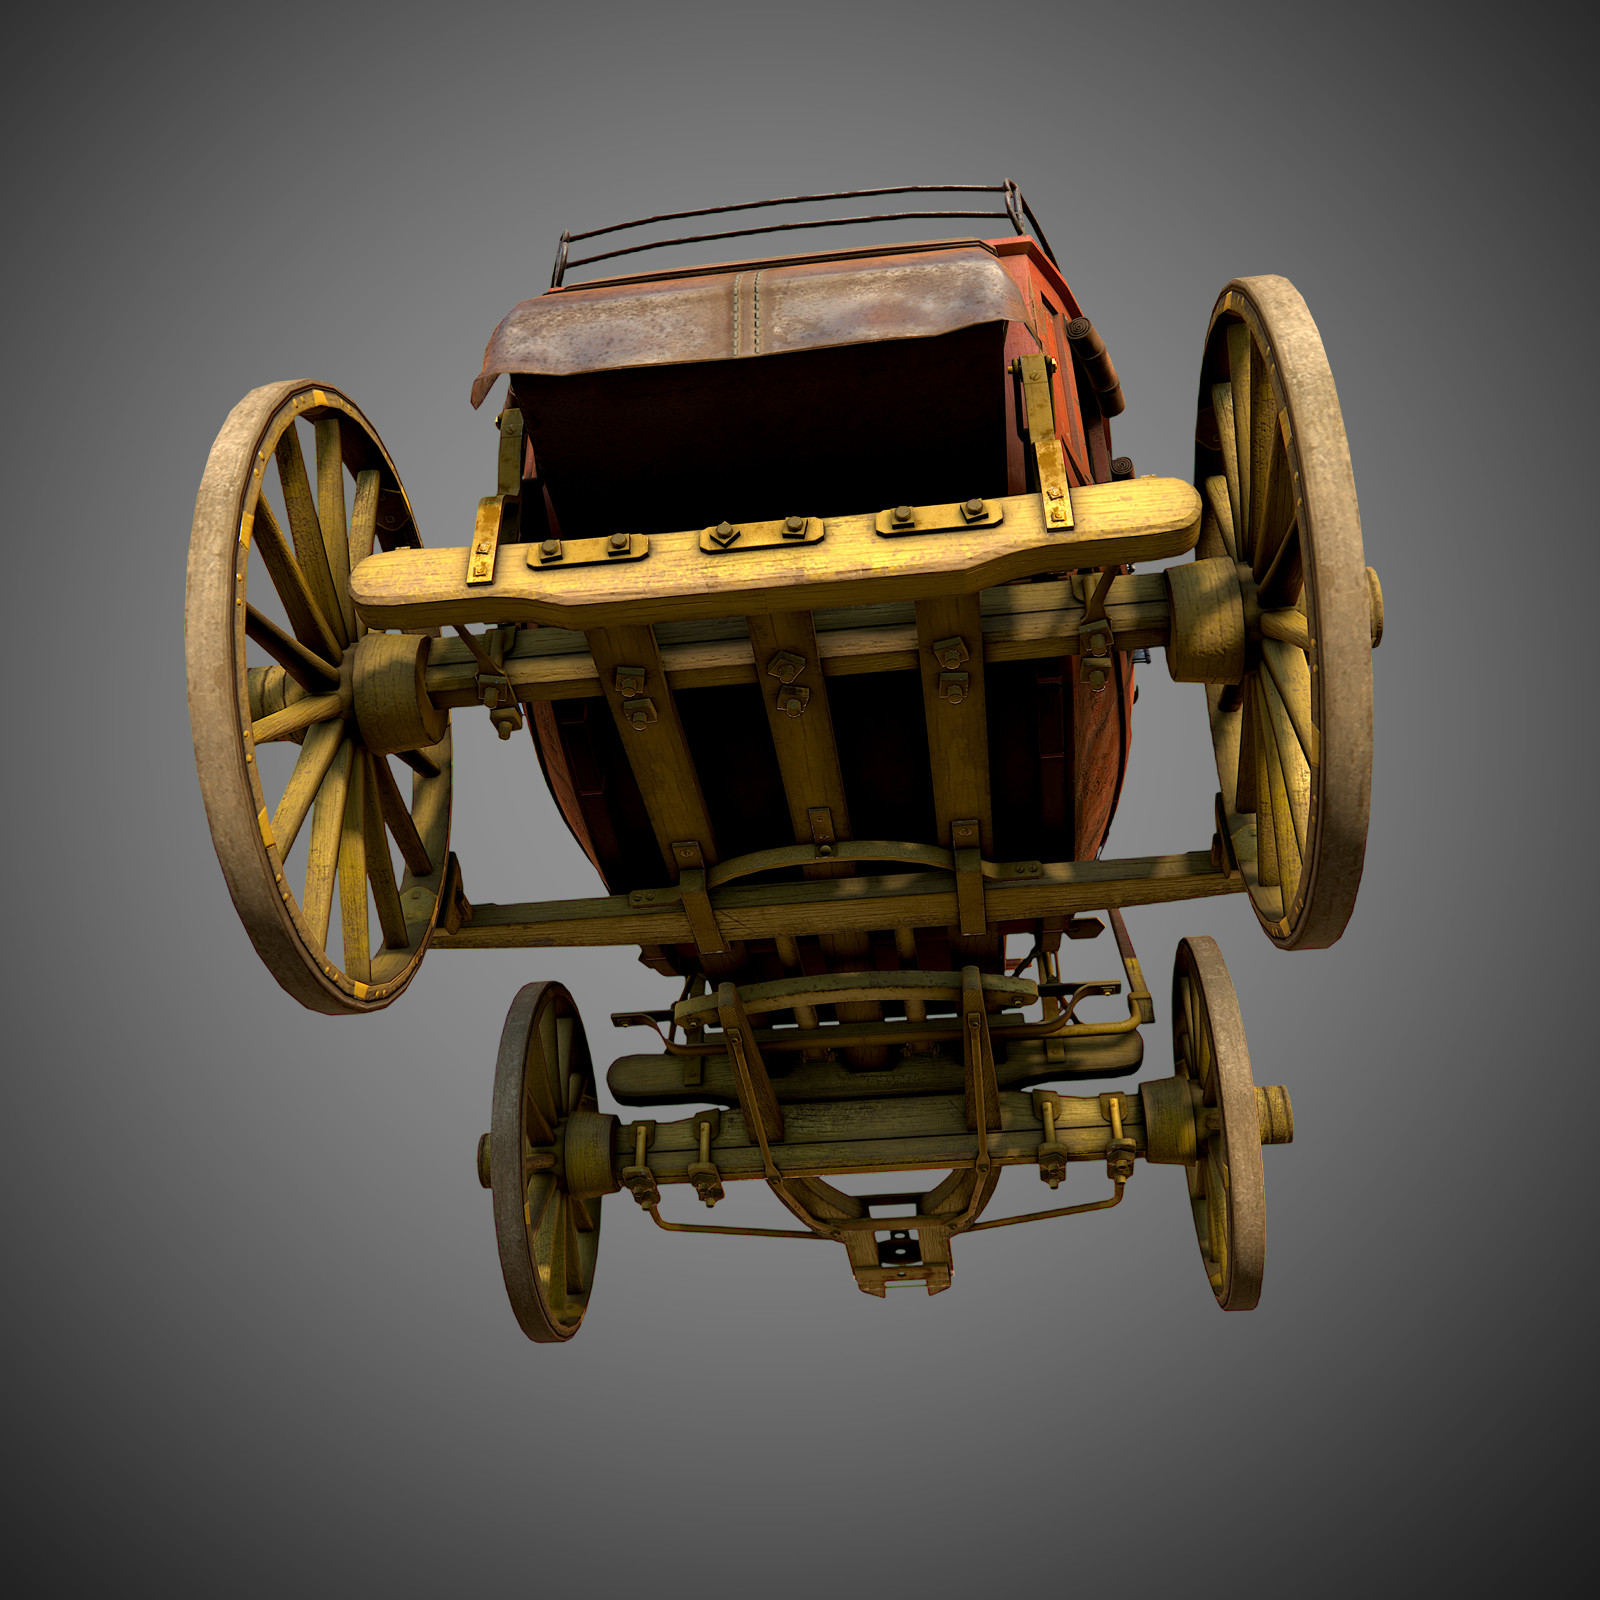 Paul fish stagecoach render 07